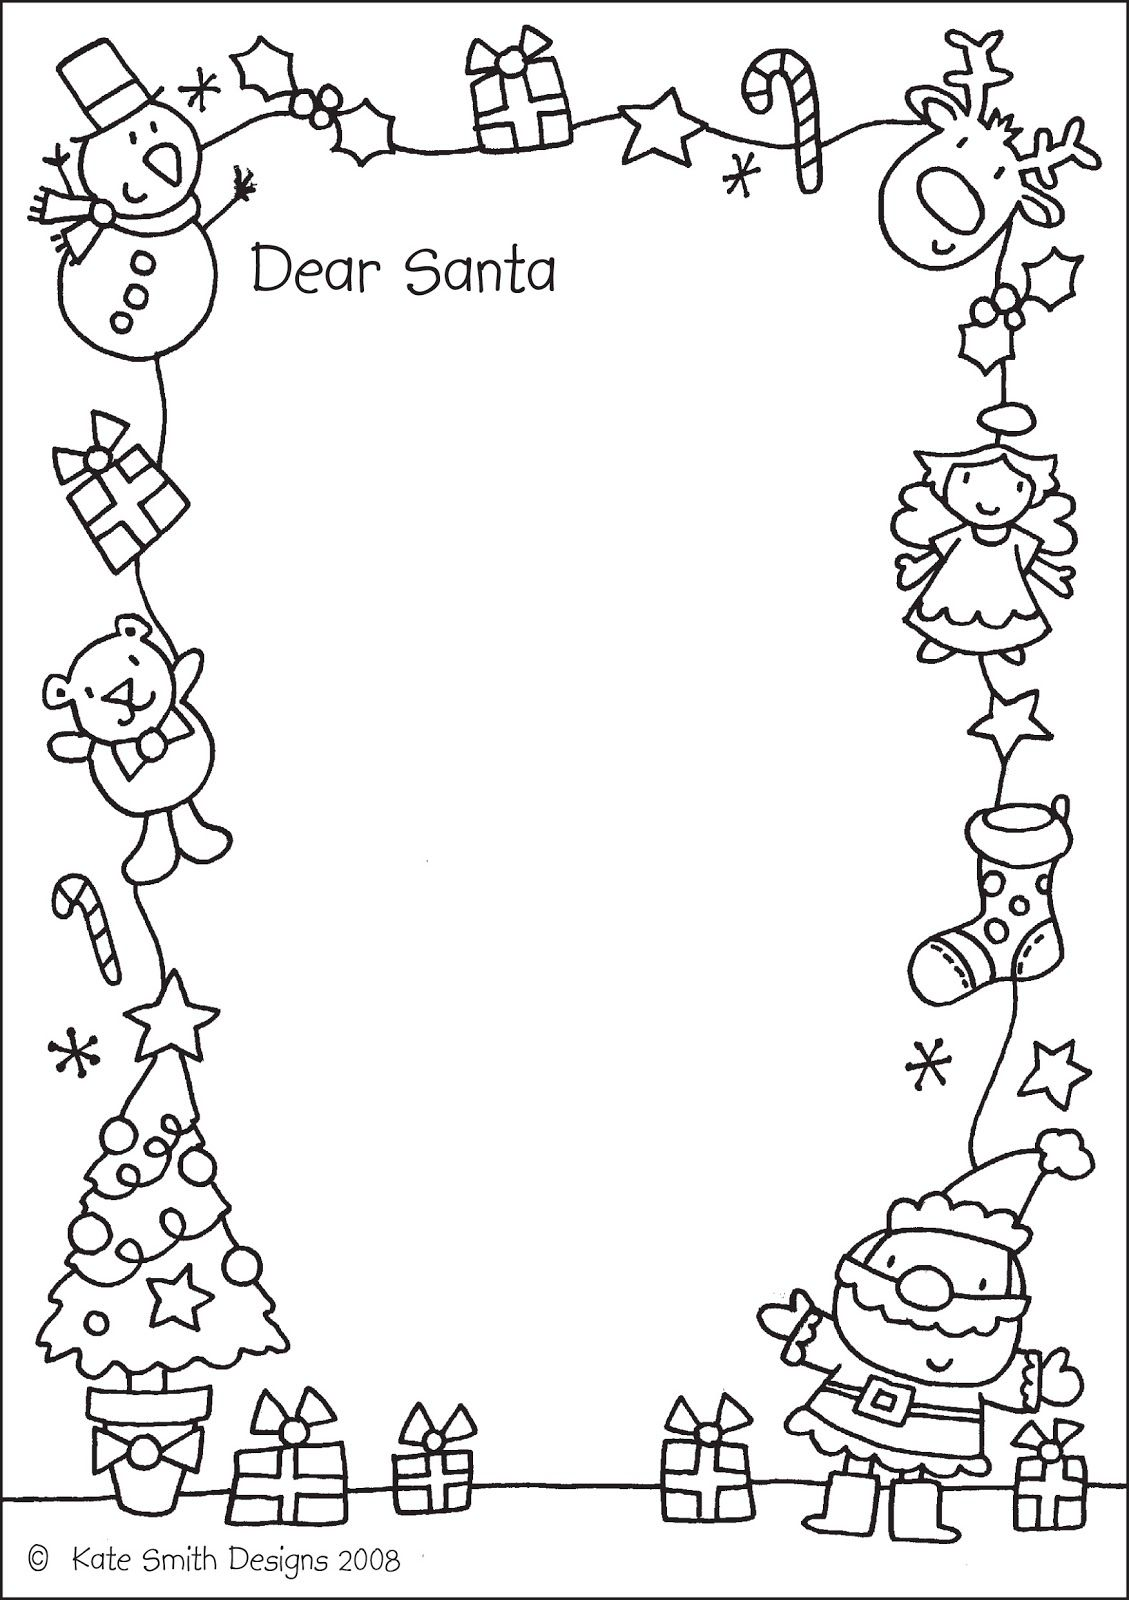 Free Letter To Santa Templates For Kids  Dear Santa Santa And